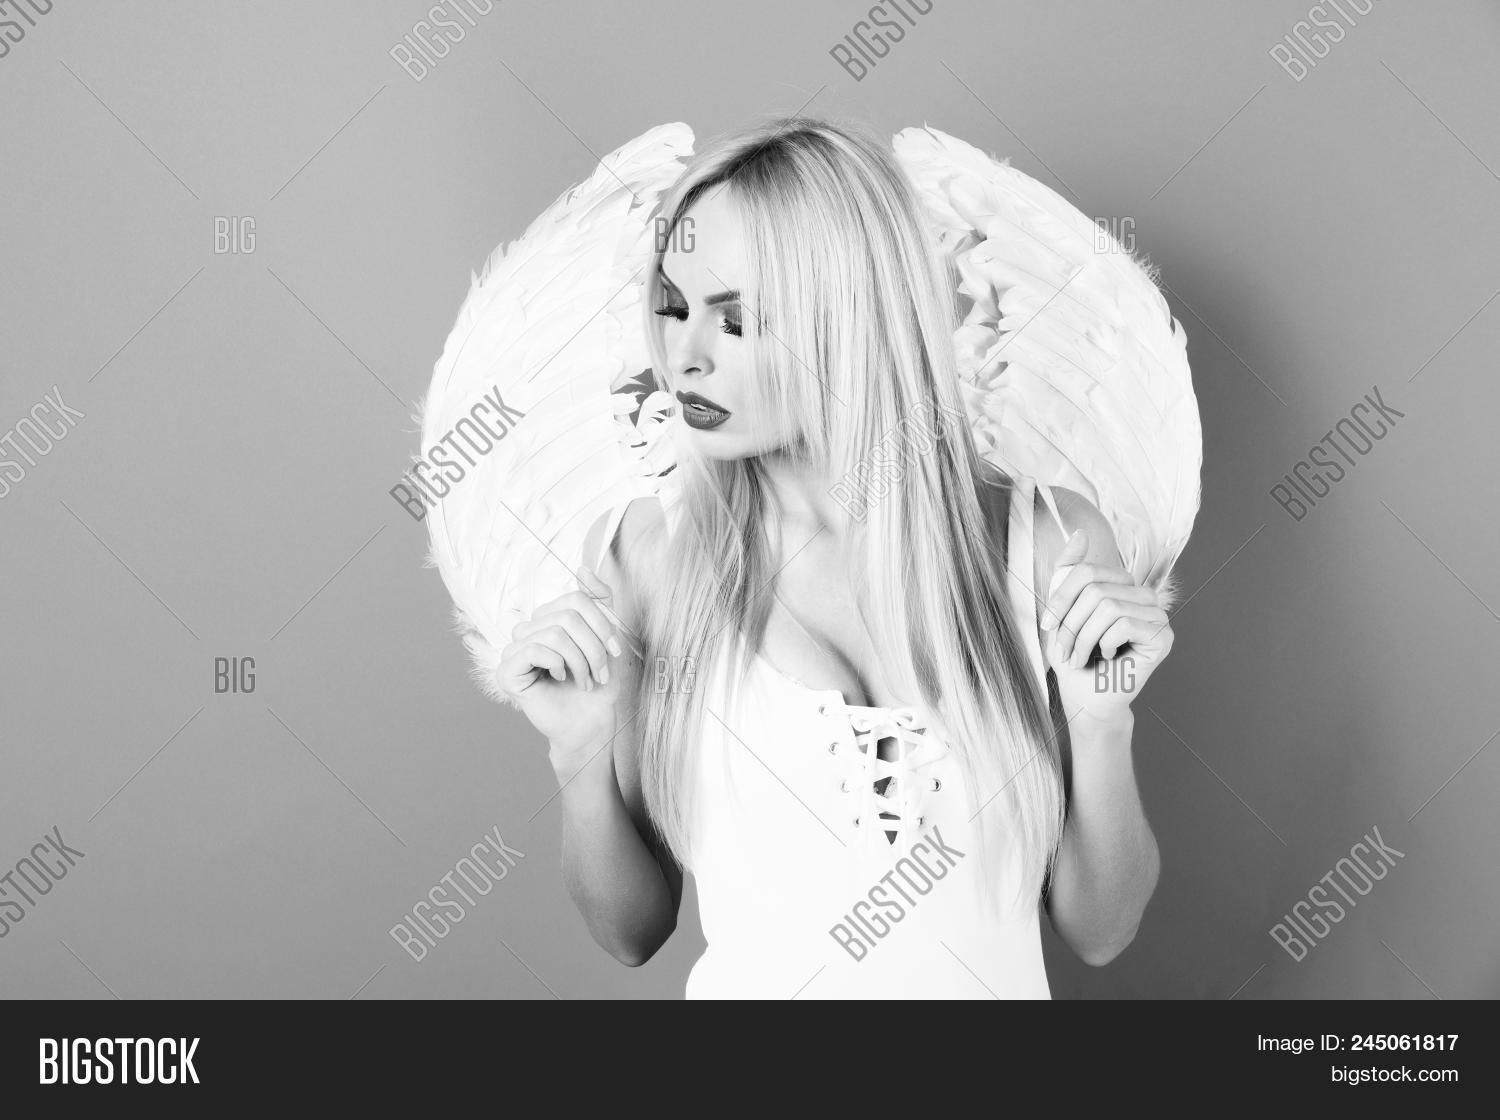 Young Angel Angel Image Photo Free Trial Bigstock